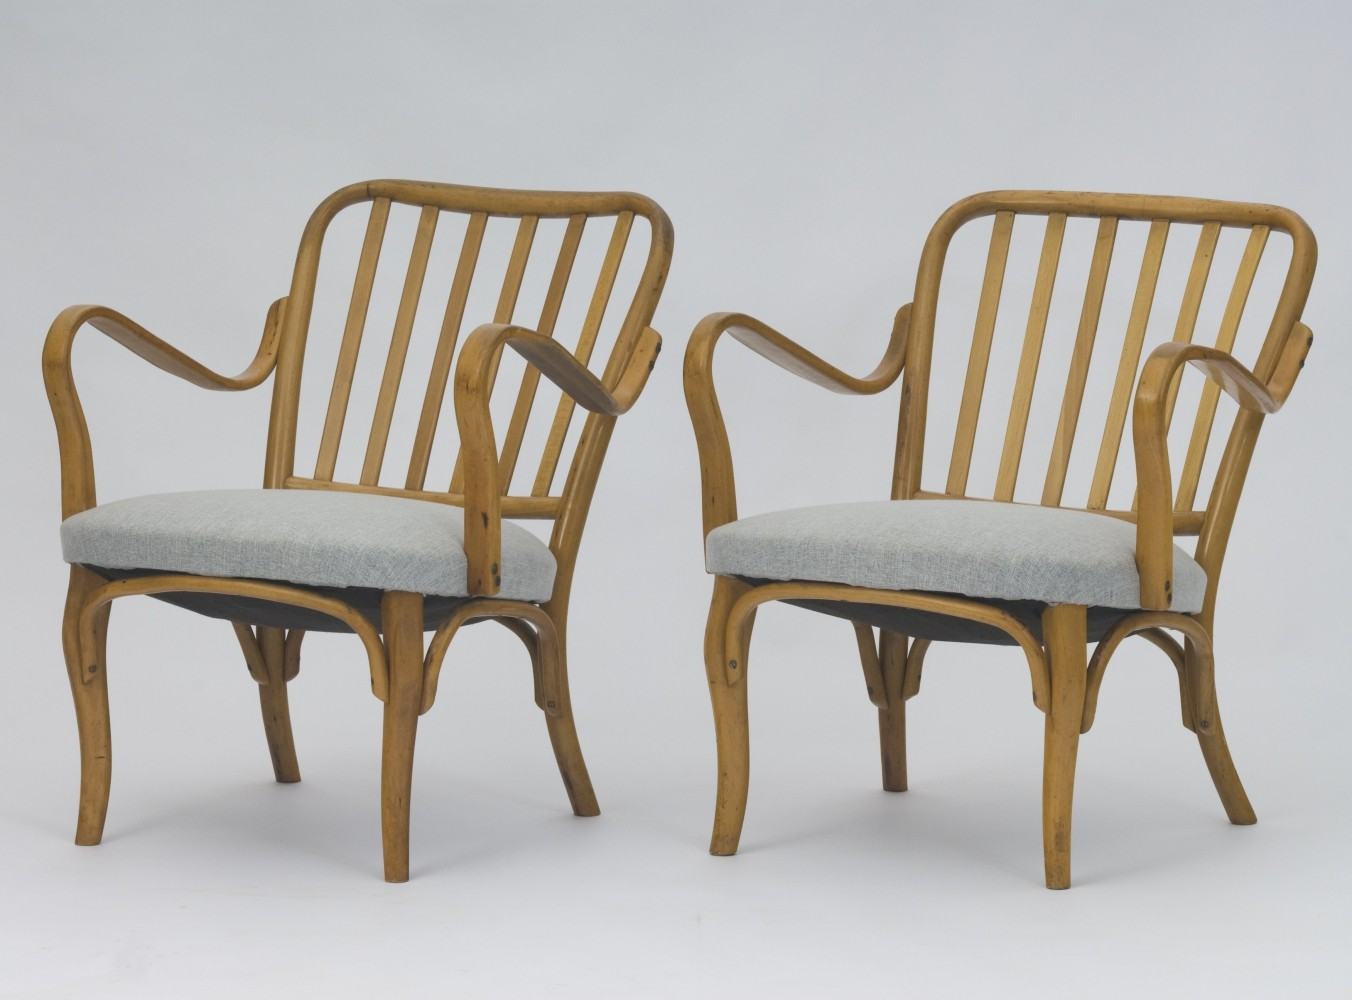 Pair of arm chairs by Josef Frank for Thonet, 1930s